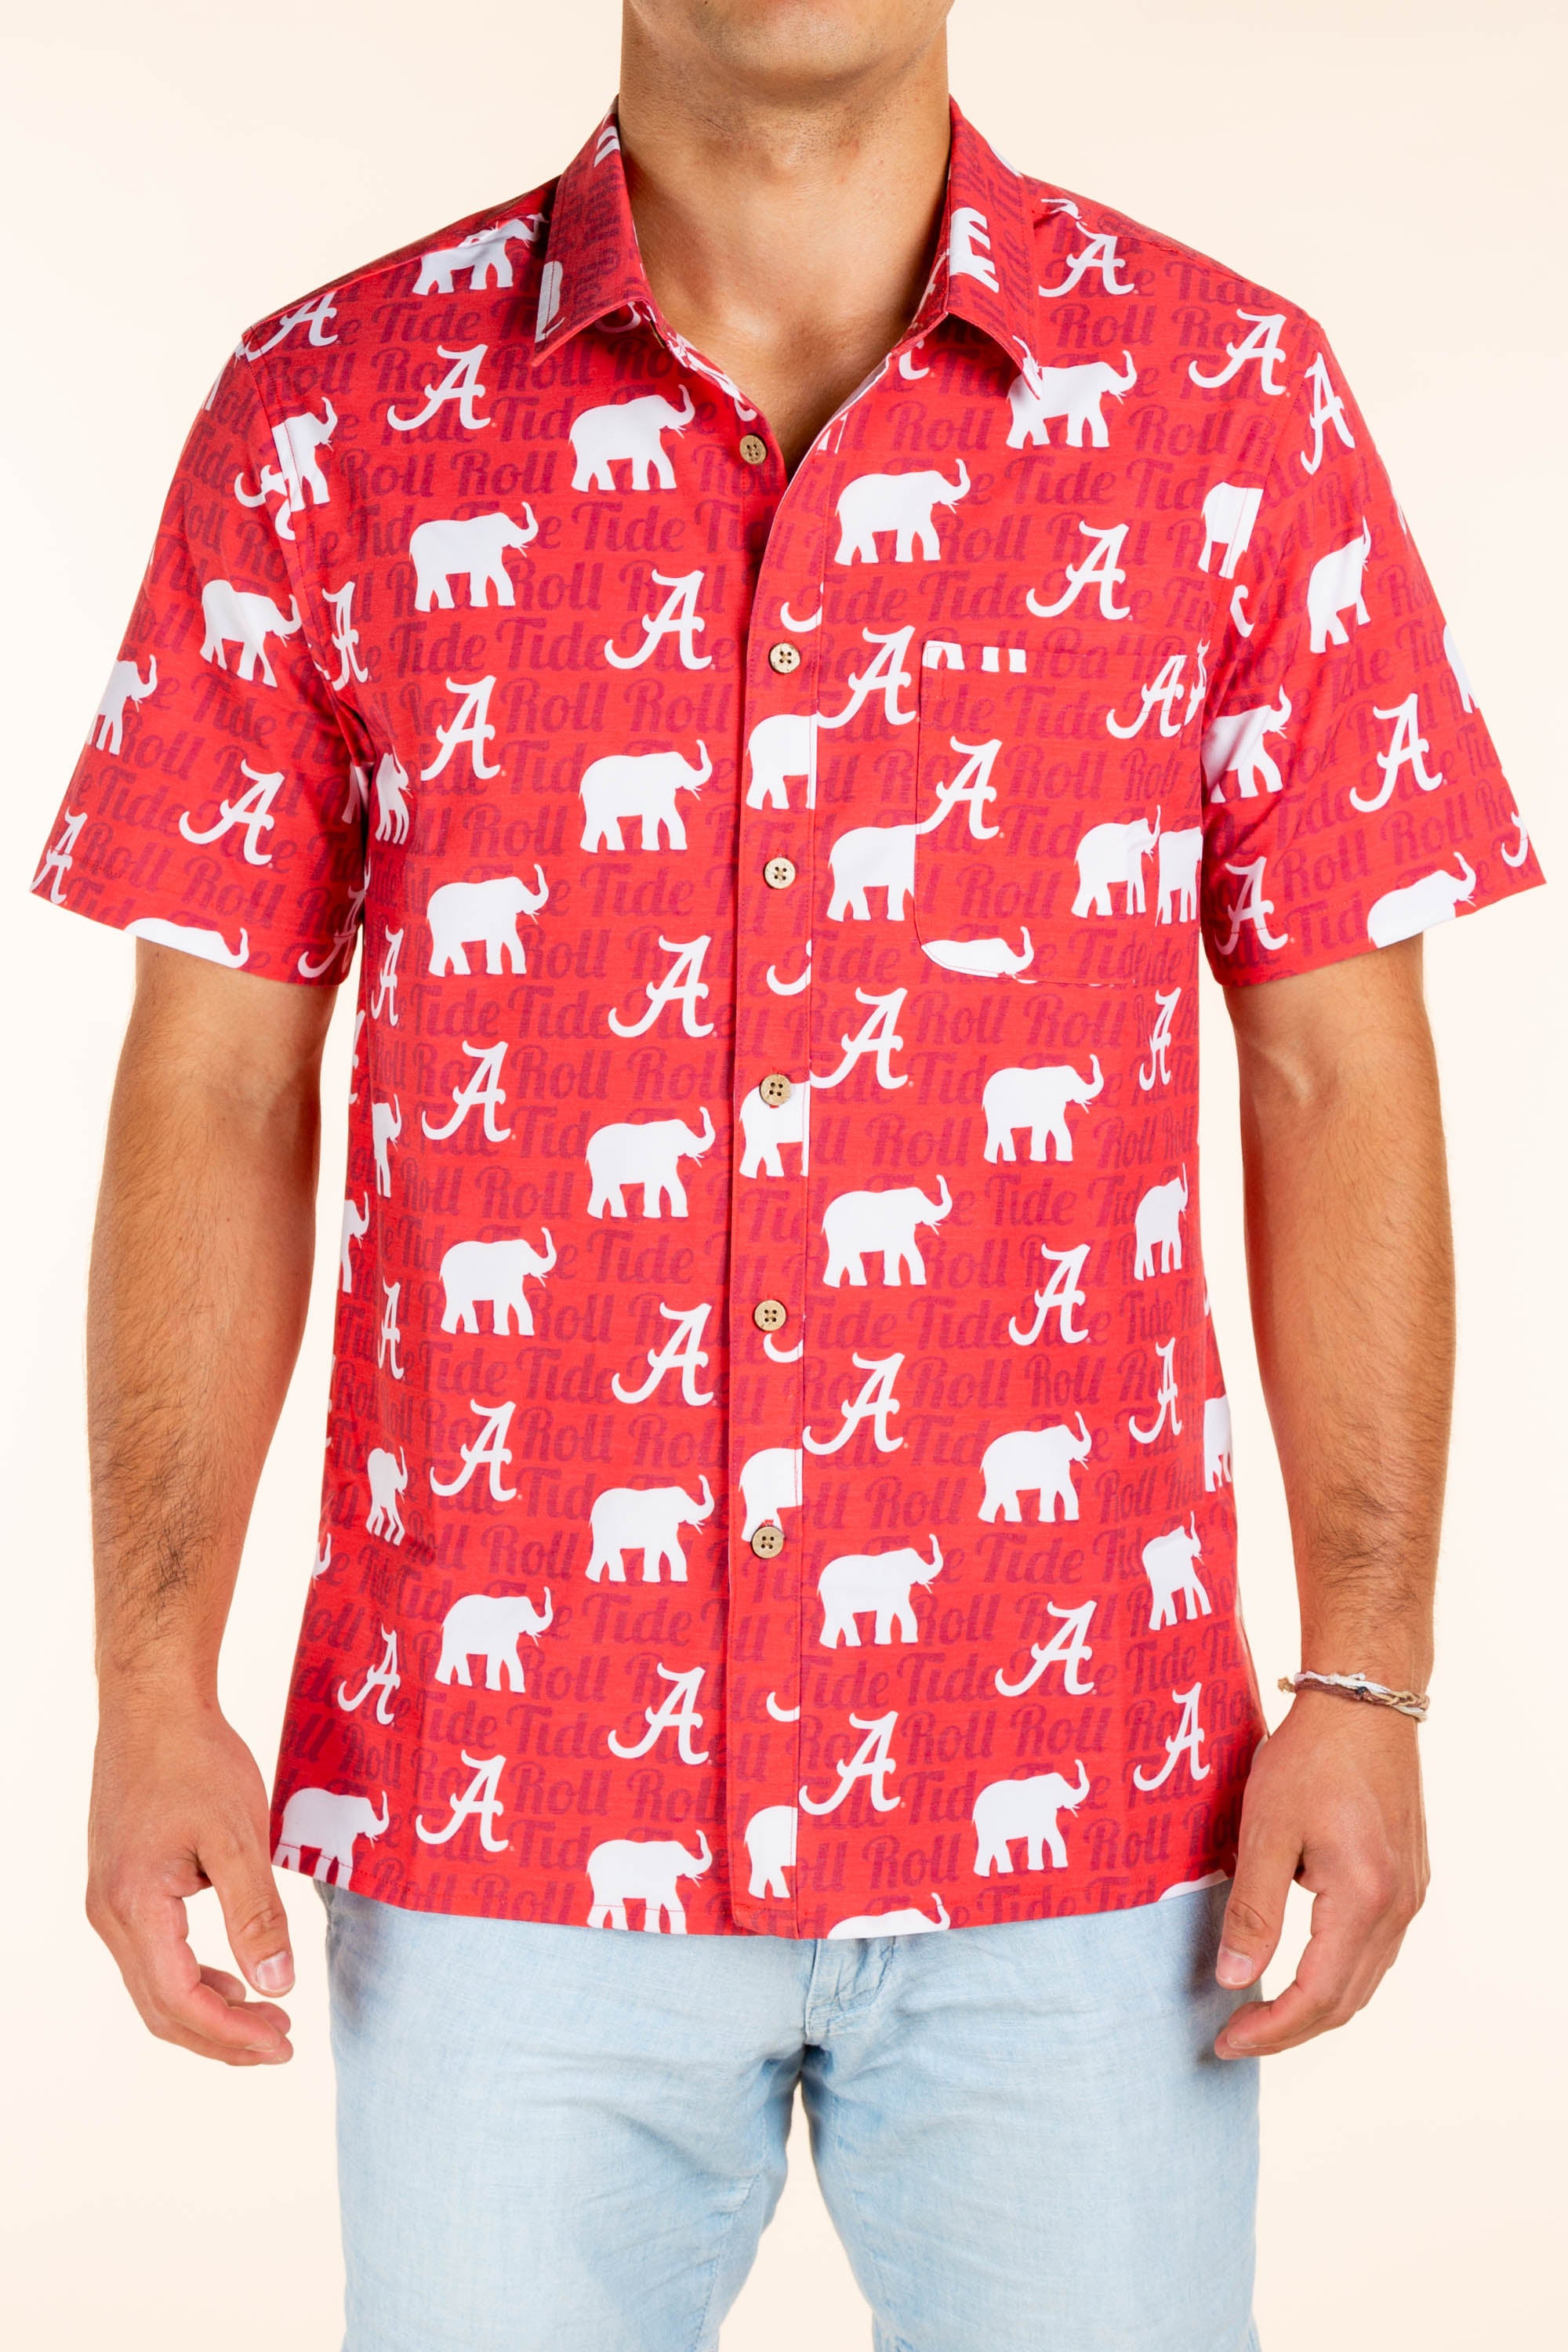 University of Alabama Red Button Up Shirt